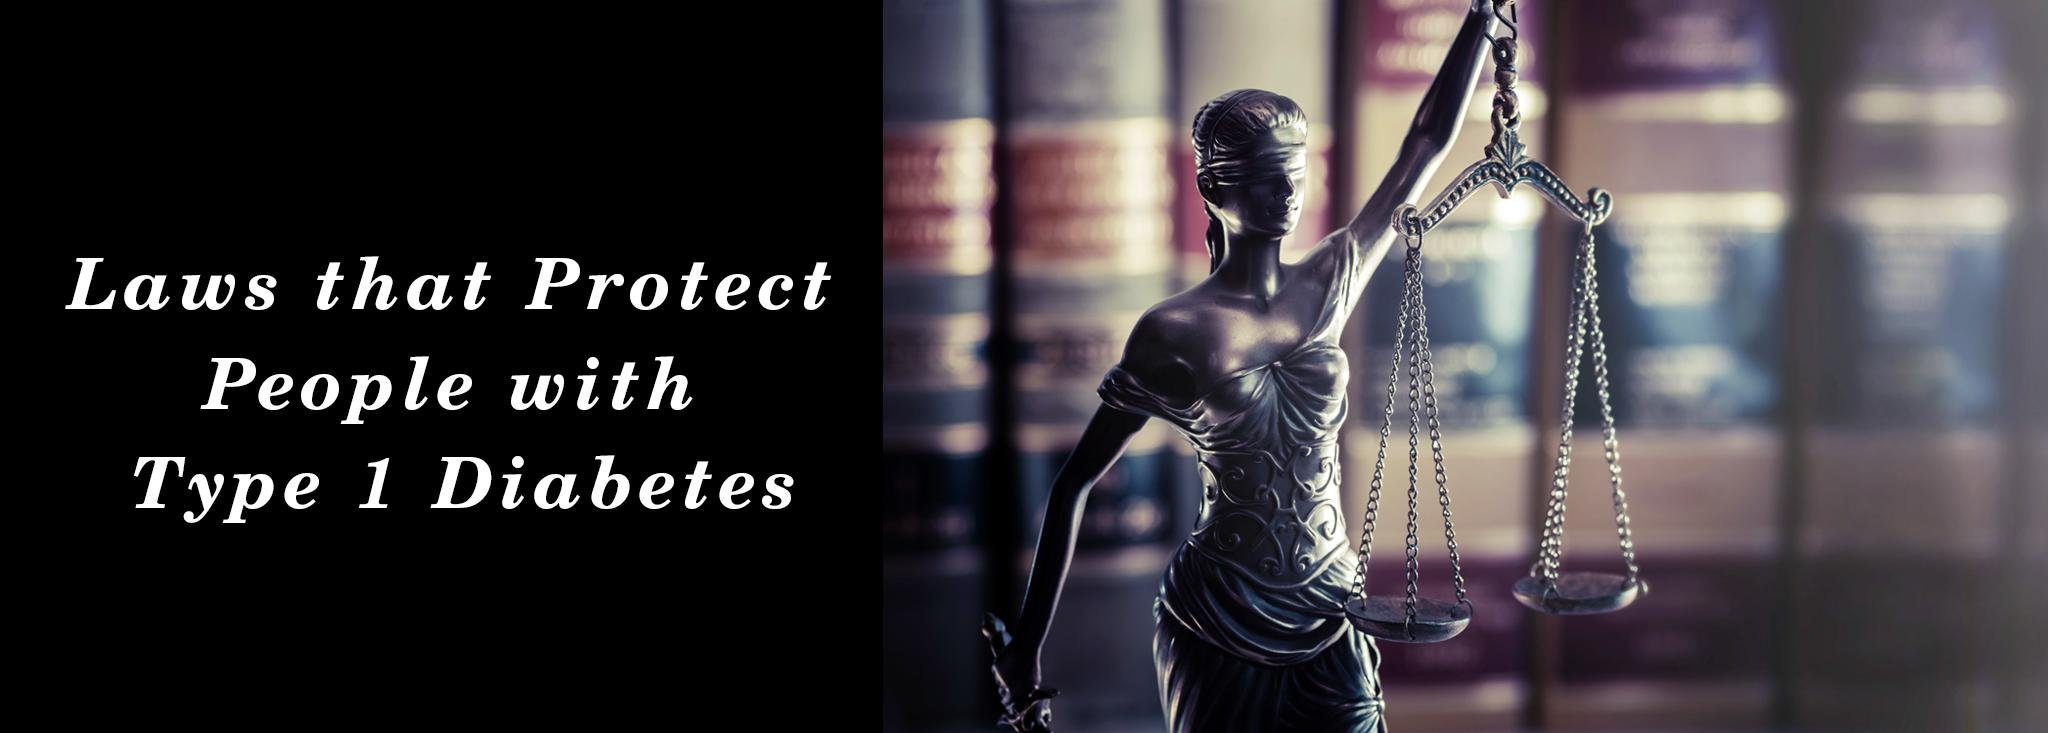 Laws that Protect People with Type 1 Diabetes